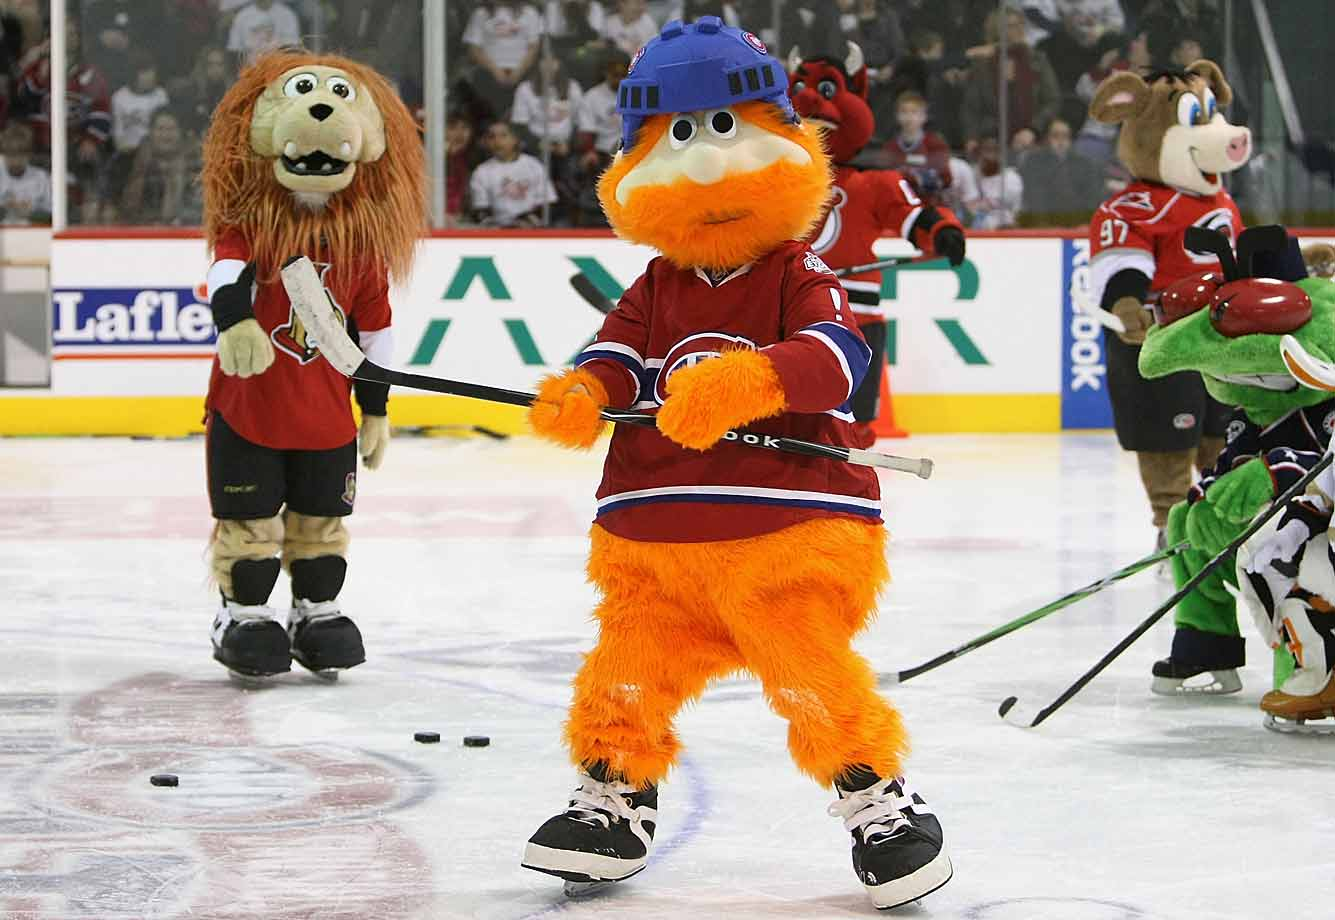 """What is he? The former mascot of the Montreal Expos. Youppi! (French for """"Yippee!"""") was taken in by the storied Habs after the MLB team relocated to Washington for the 2005 season and left him on his own."""